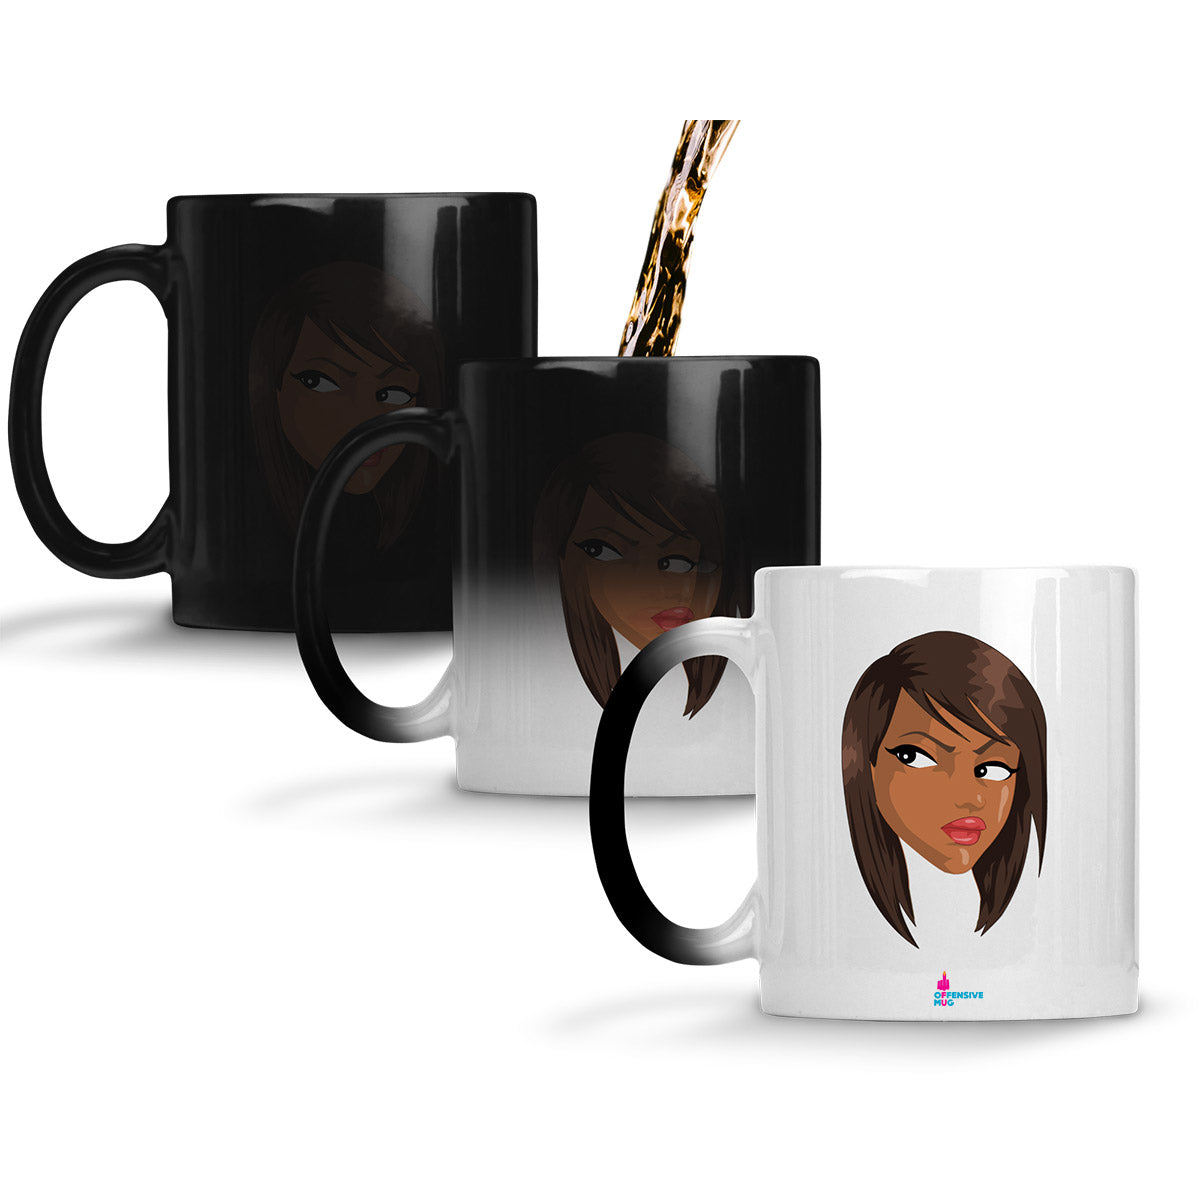 Kia Magic Mug - Offensive Mug